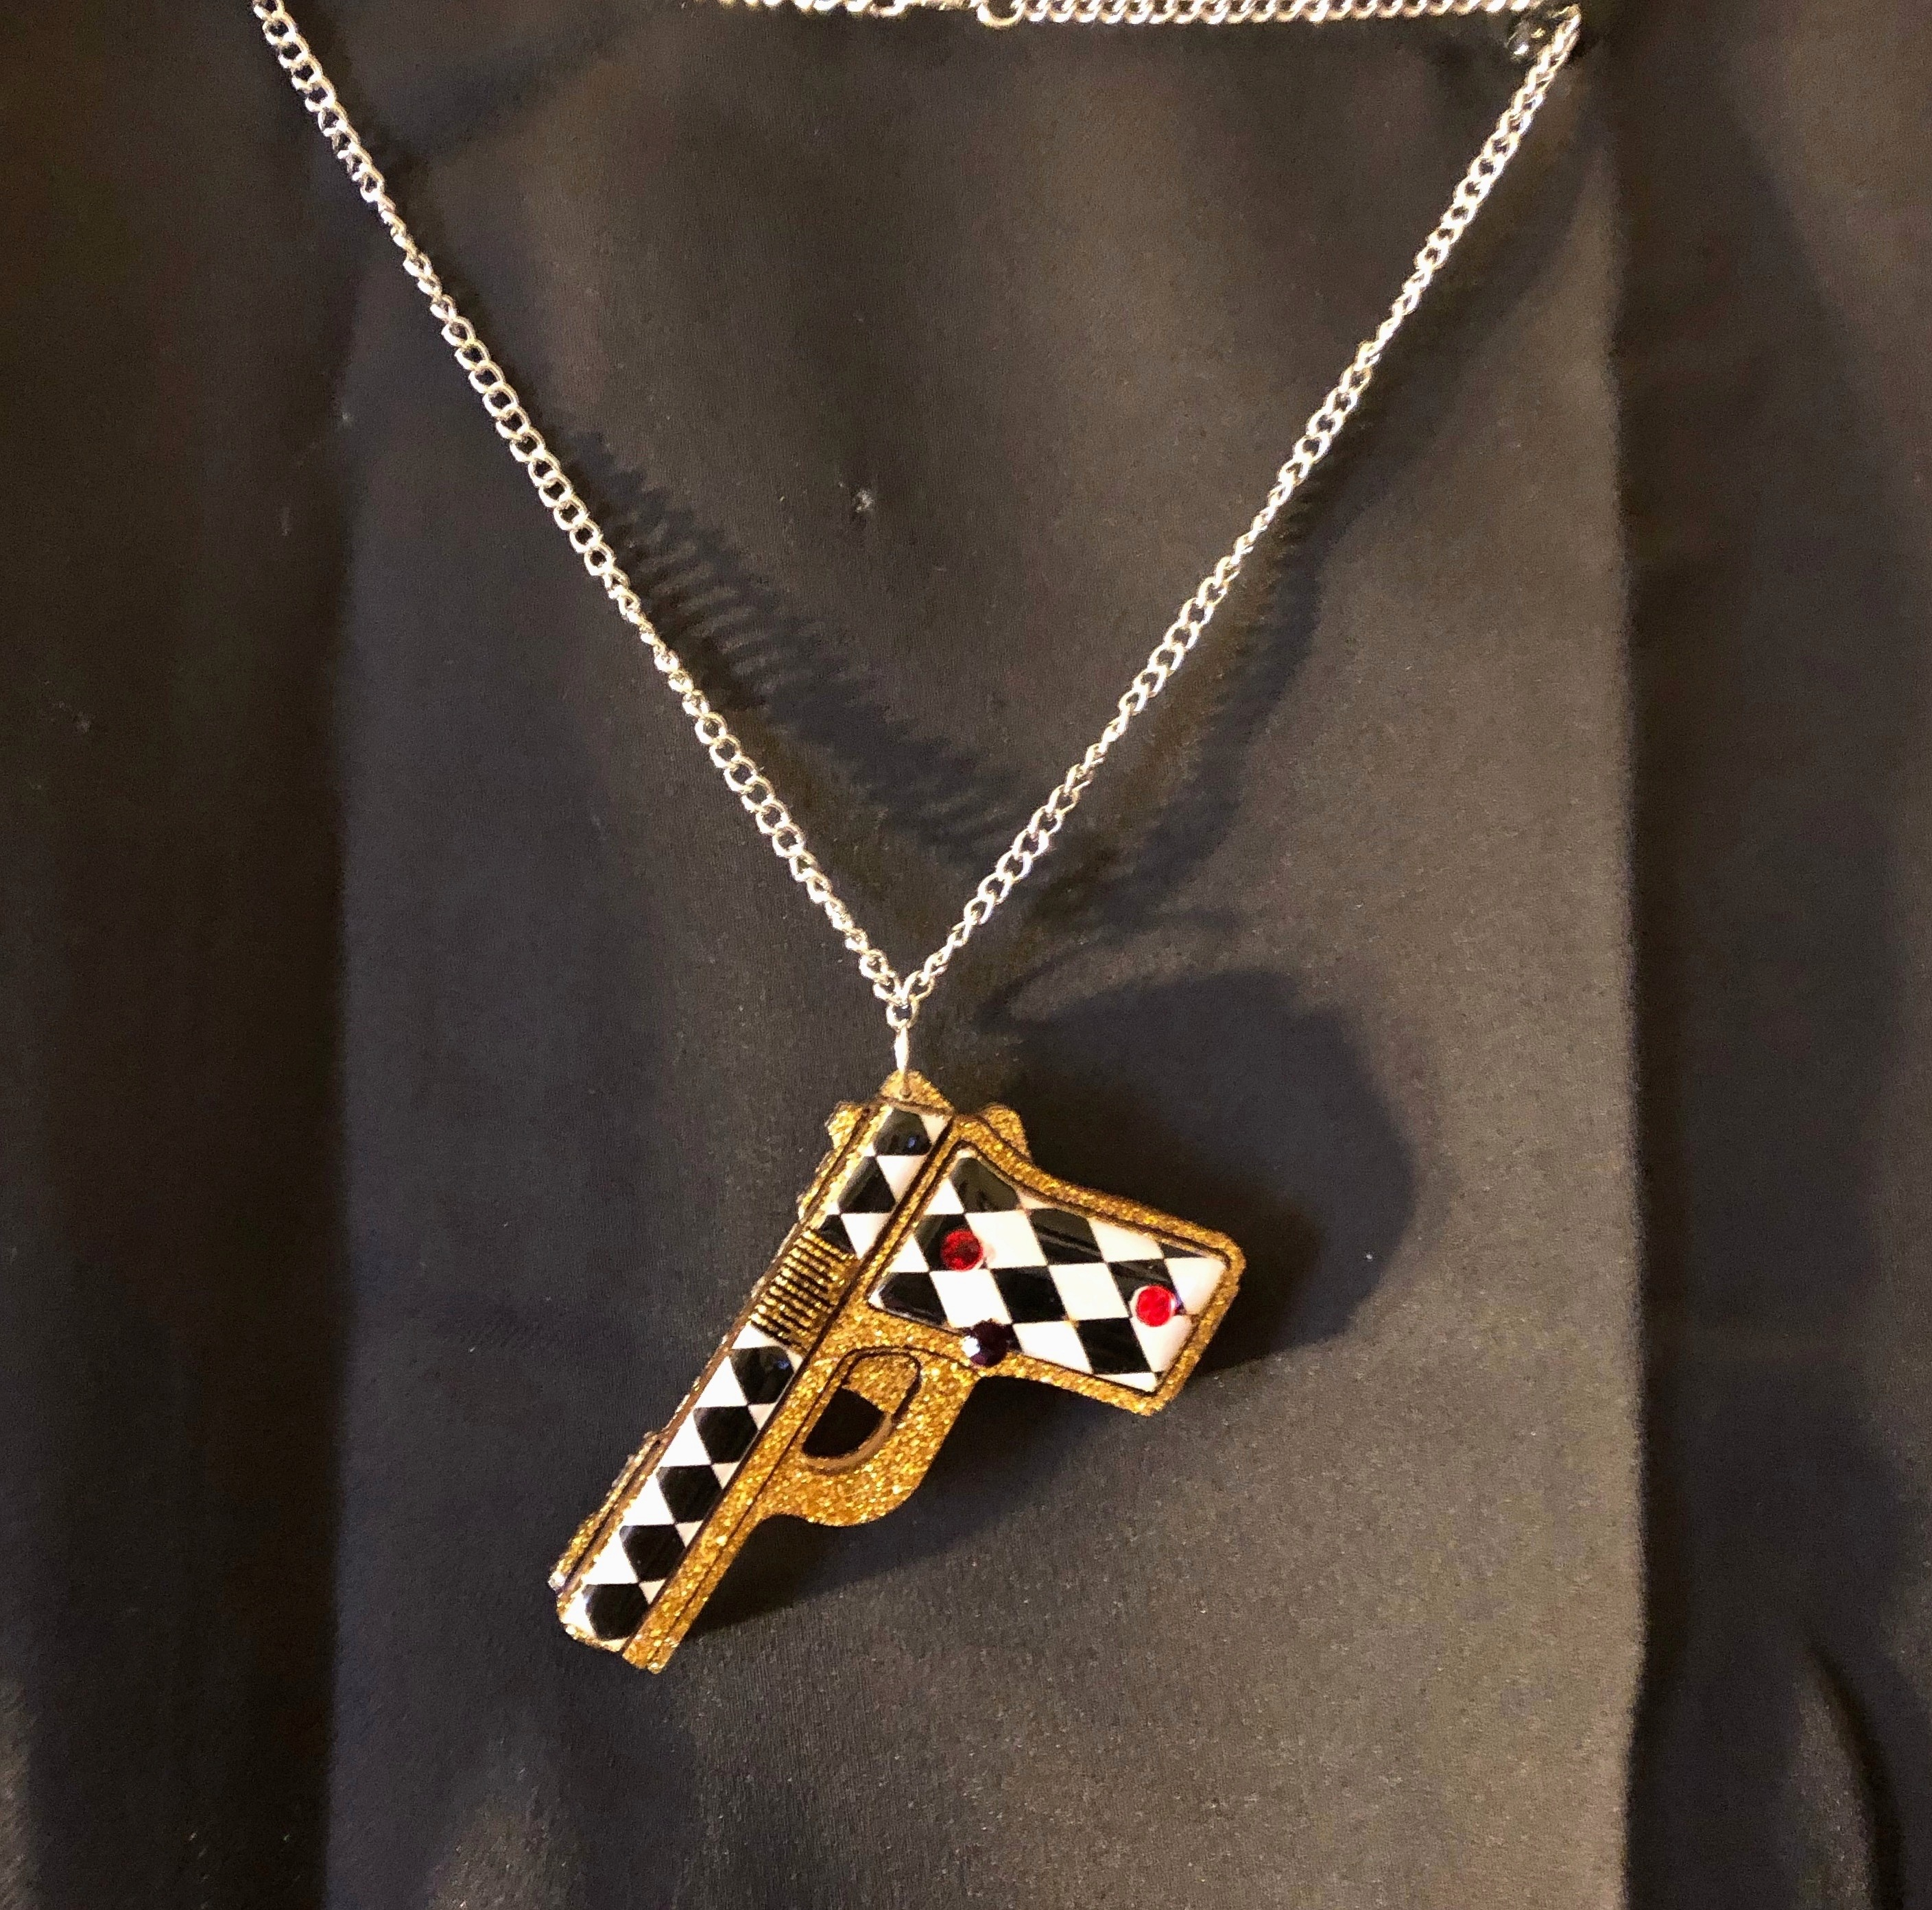 Harley Quinn Birds Of Prey Inspired Pendant Necklace Sold By Damikins Eclectic World On Storenvy